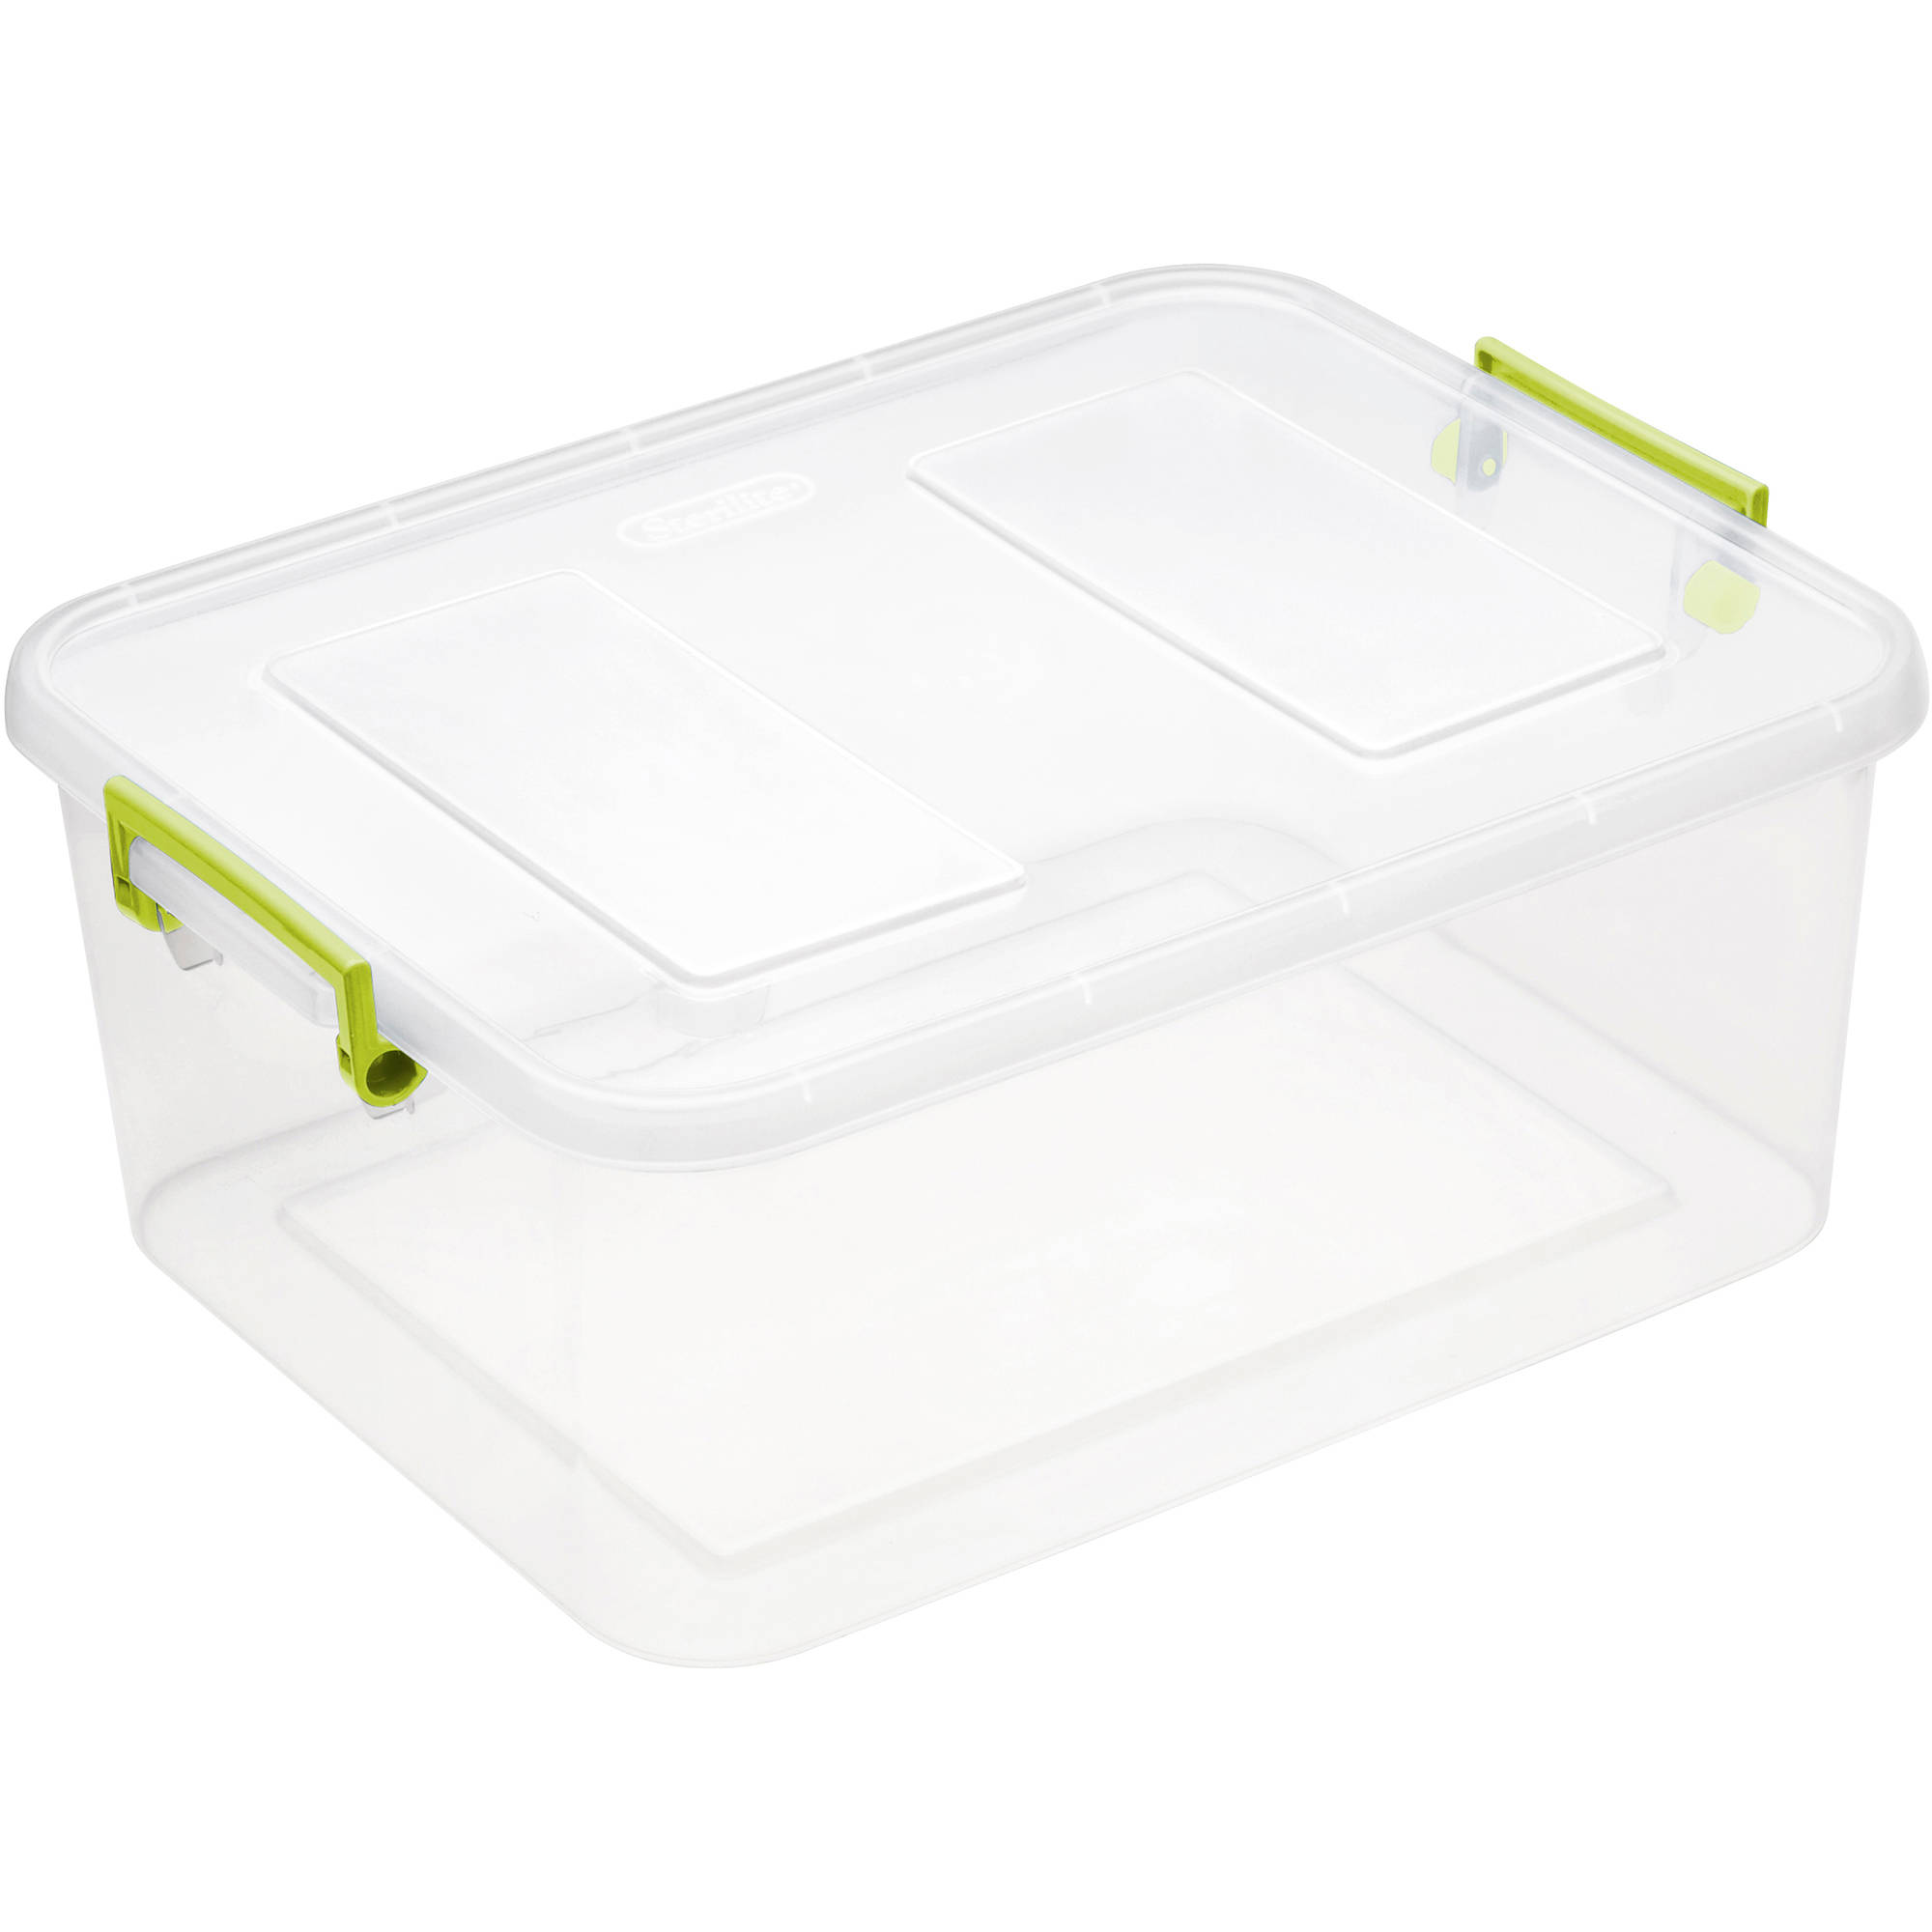 Sterilite 12.7 Quart Modular Latch Box- Bamboo Grass (Available in Case of 6 or Single Unit)